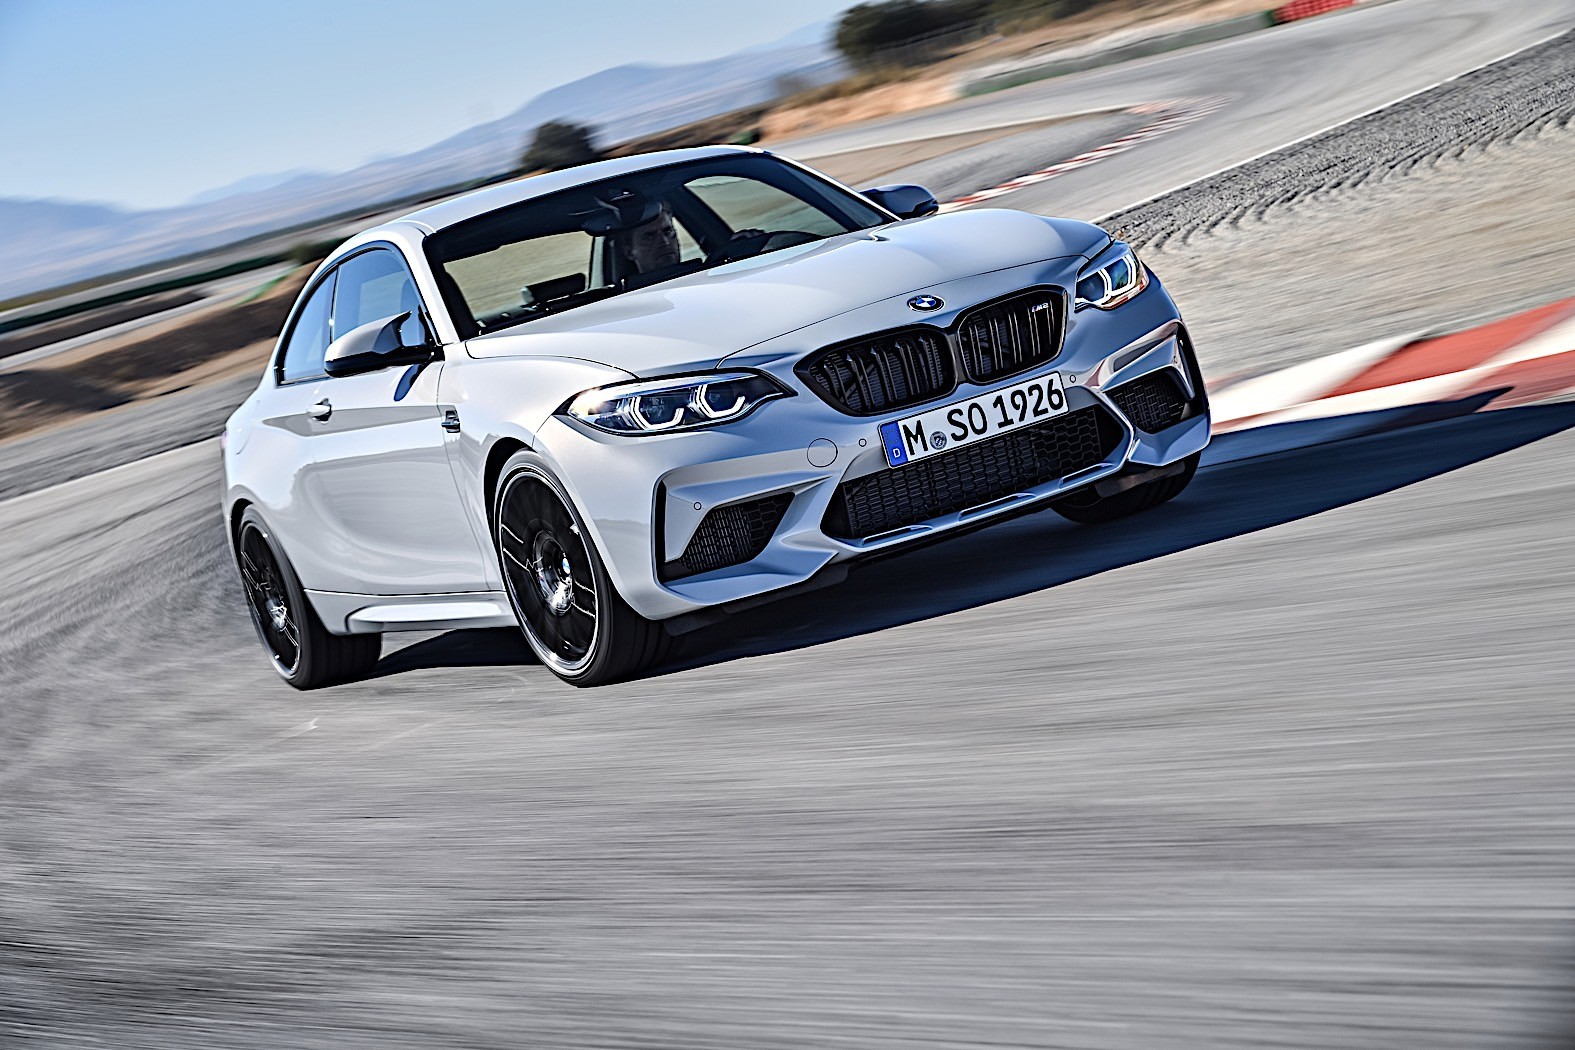 2019 BMW M2 Competition Officially Revealed, Replaces M2 Coupe - autoevolution